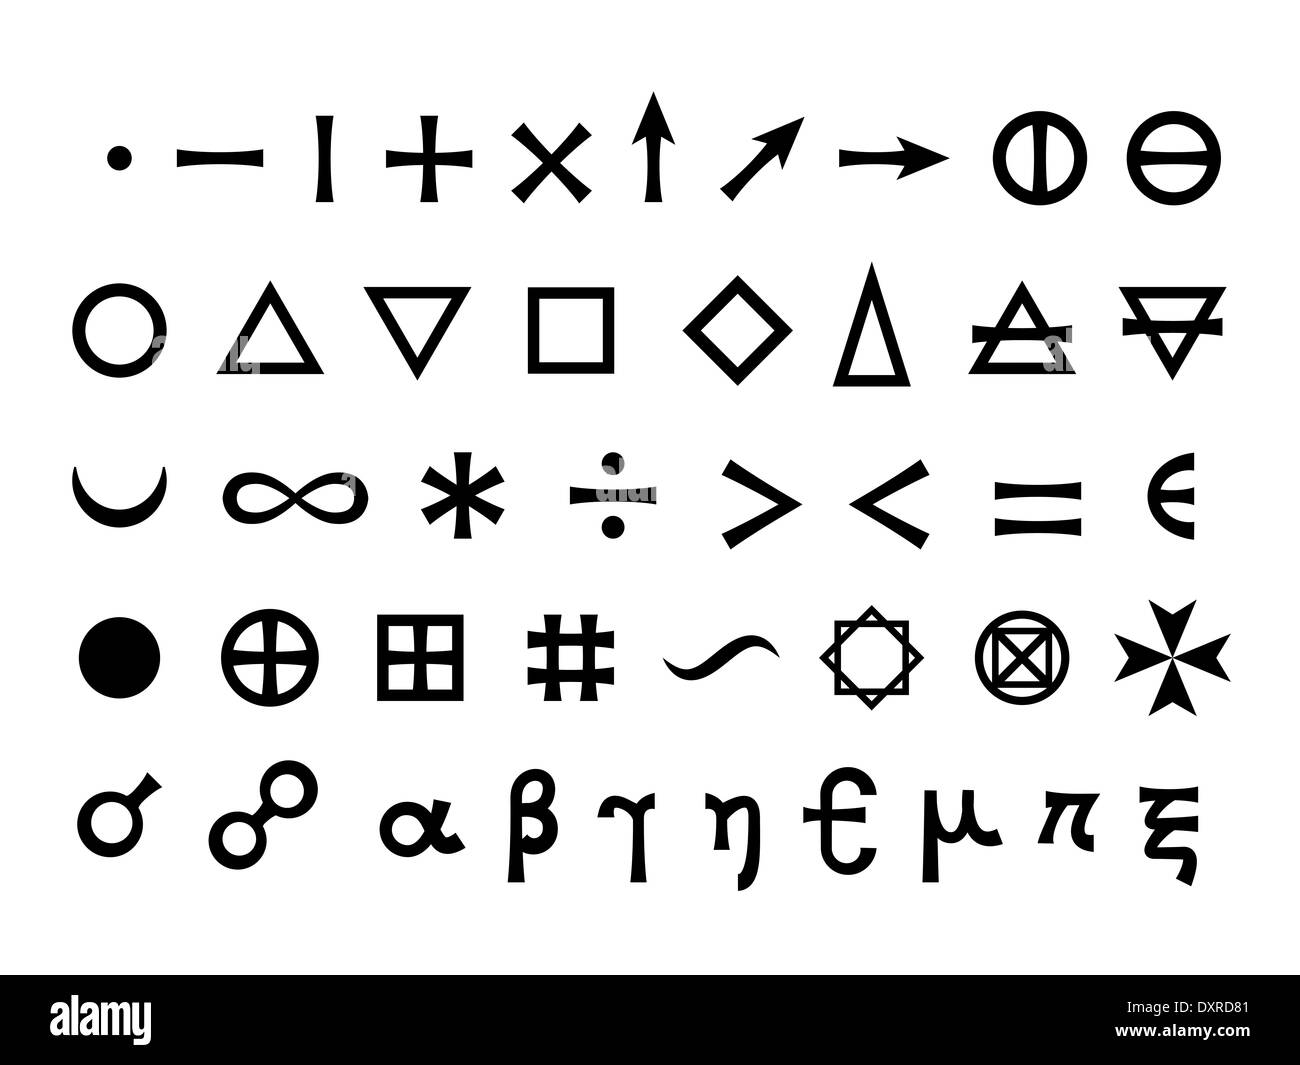 Basic signs fundamental elements and mathematical symbols basic signs fundamental elements and mathematical symbols mystique symbols set biocorpaavc Image collections